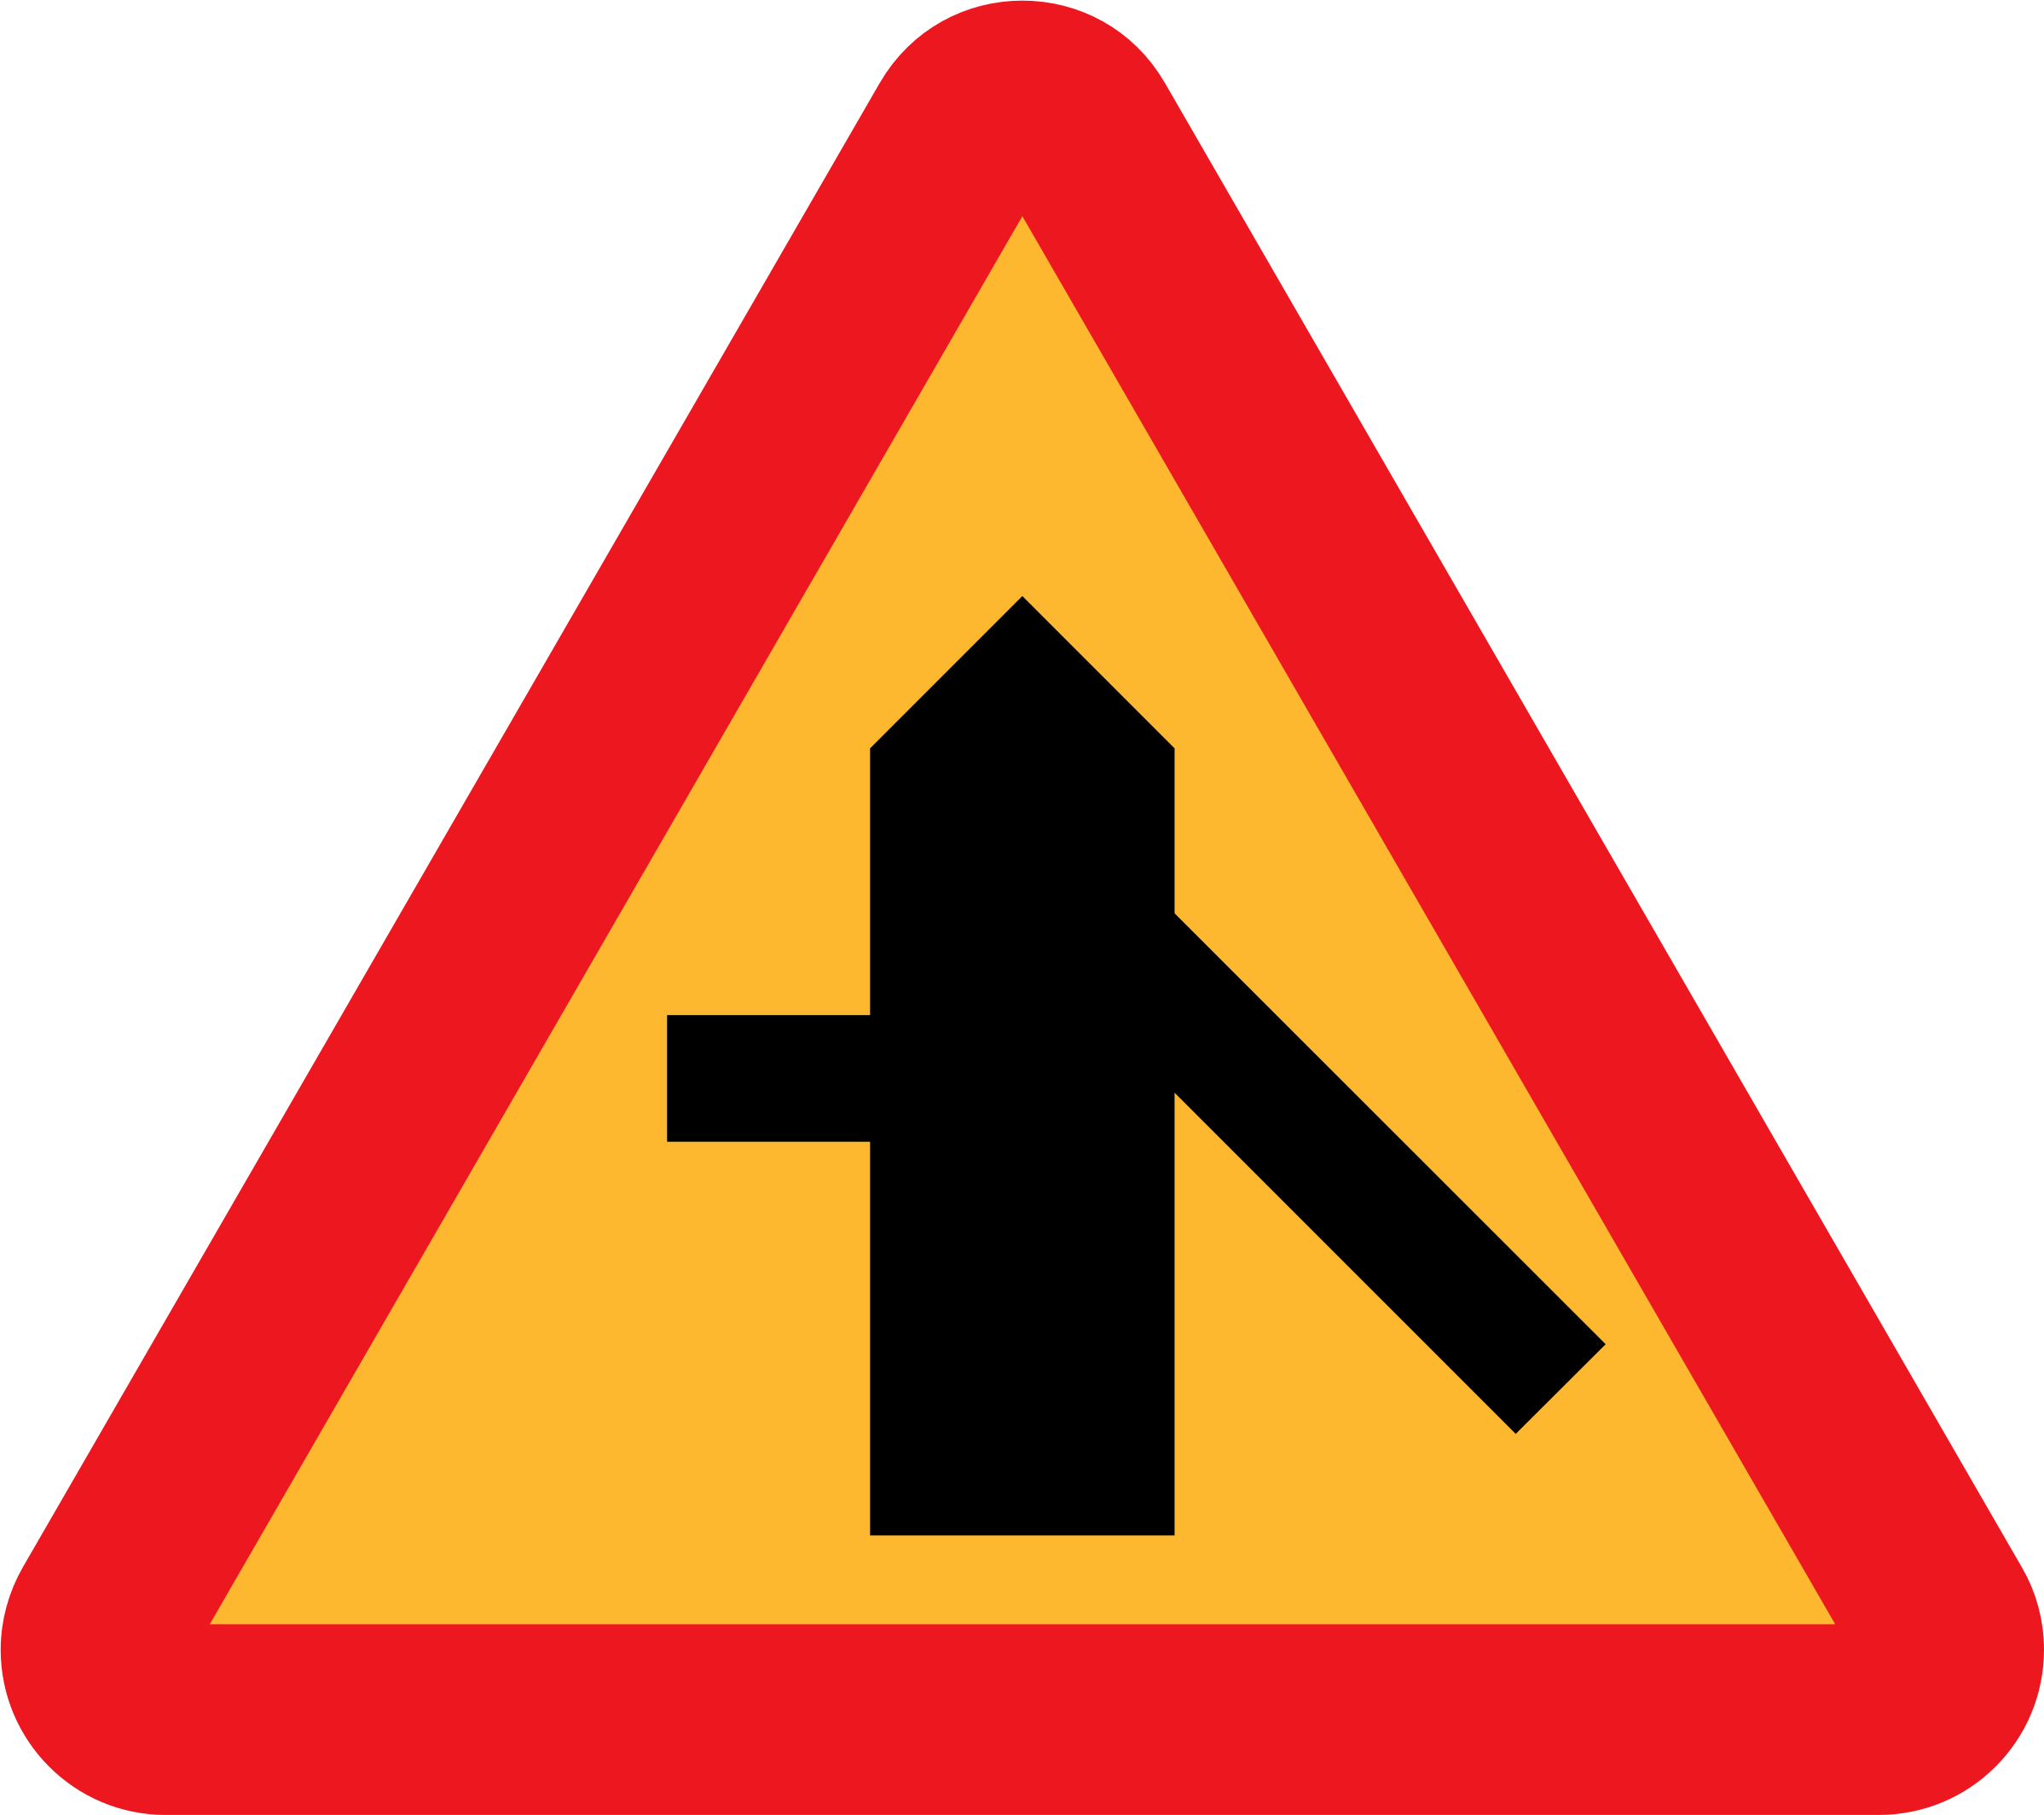 Roadlayout sign 3 by ryanlerch